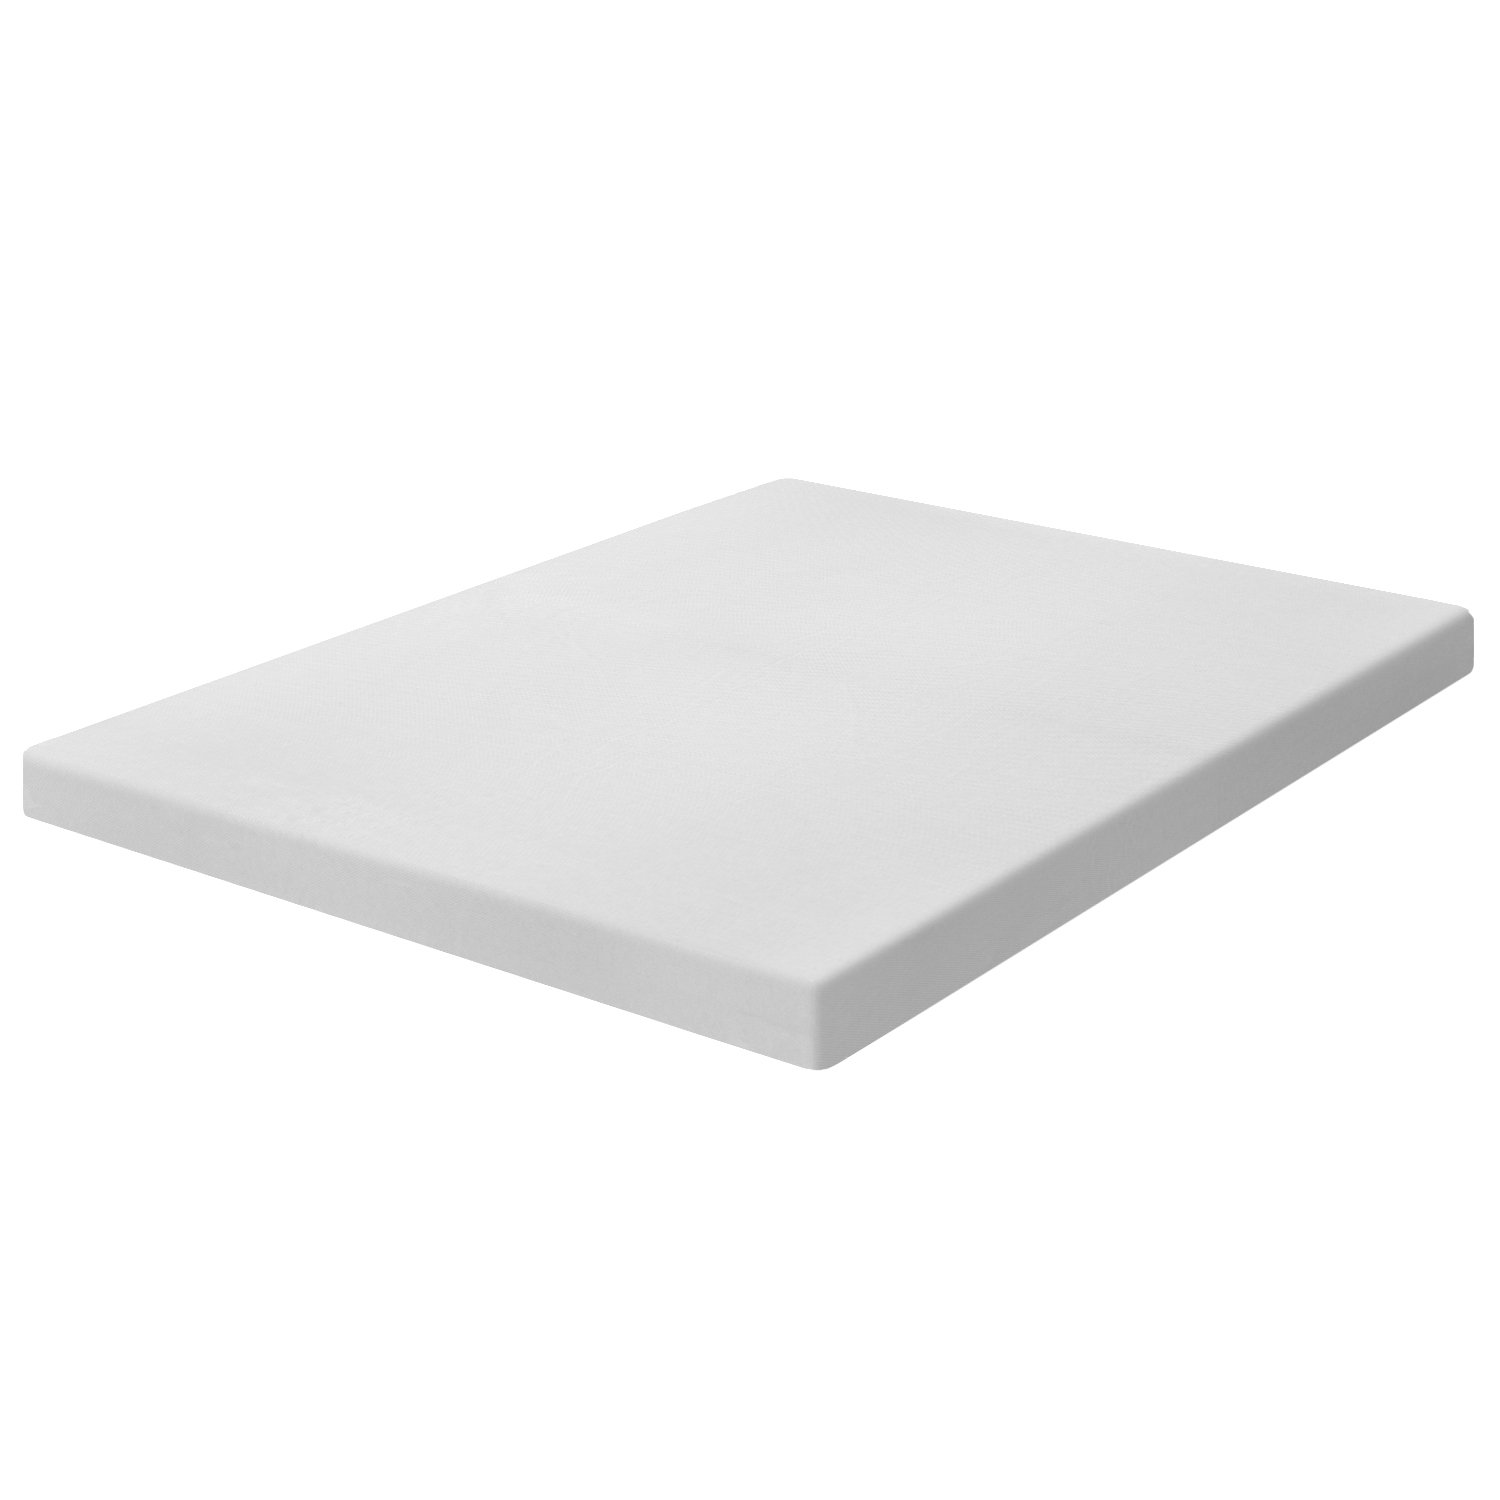 What Is The Best Memory Foam Mattress Topper